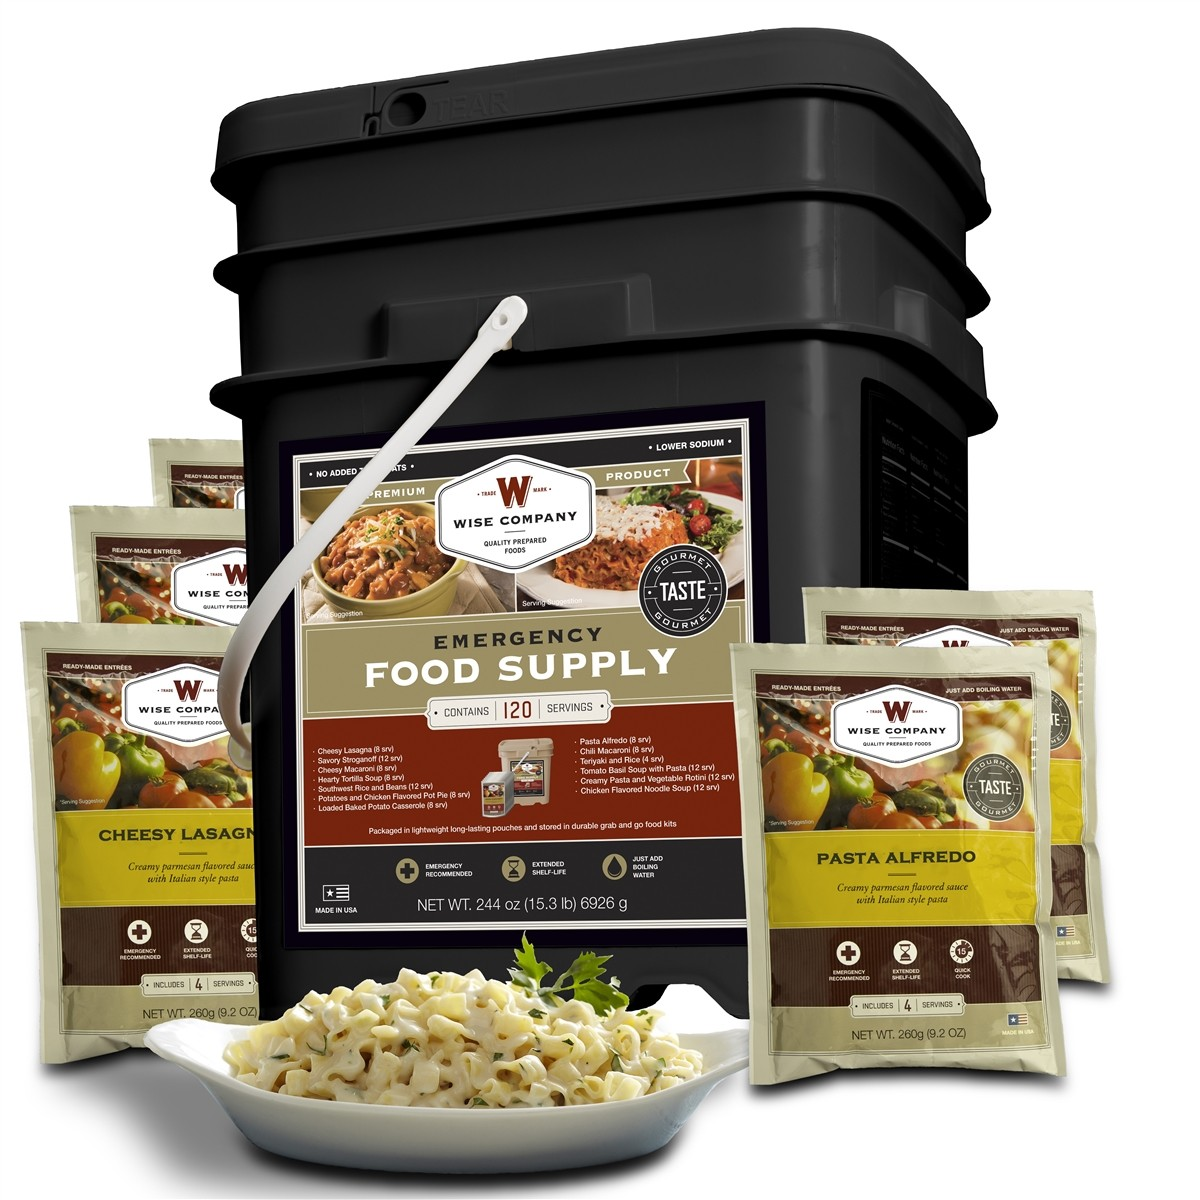 Wise Foods 120 Serving Entree Only Package